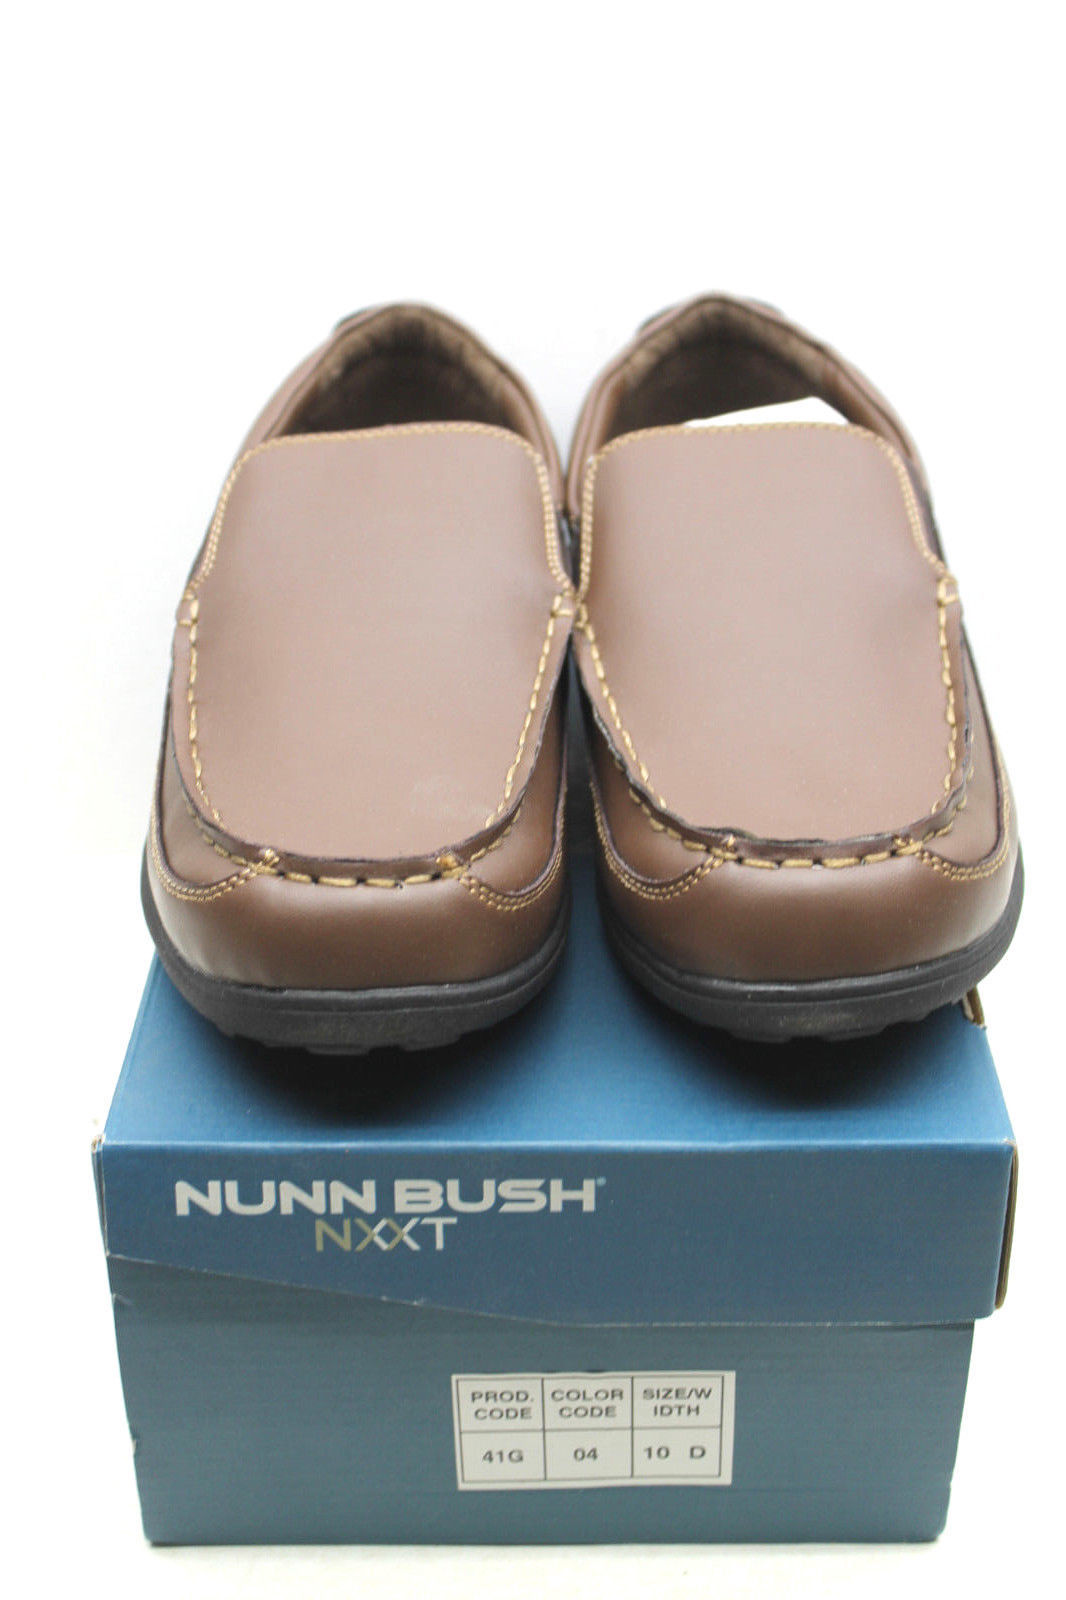 40a50f0cde1 S l1600. S l1600. Previous. Mens Nunn Bush NXXT 89173 Wellis Brown Size 10  D Casual Shoes Leather Loafer